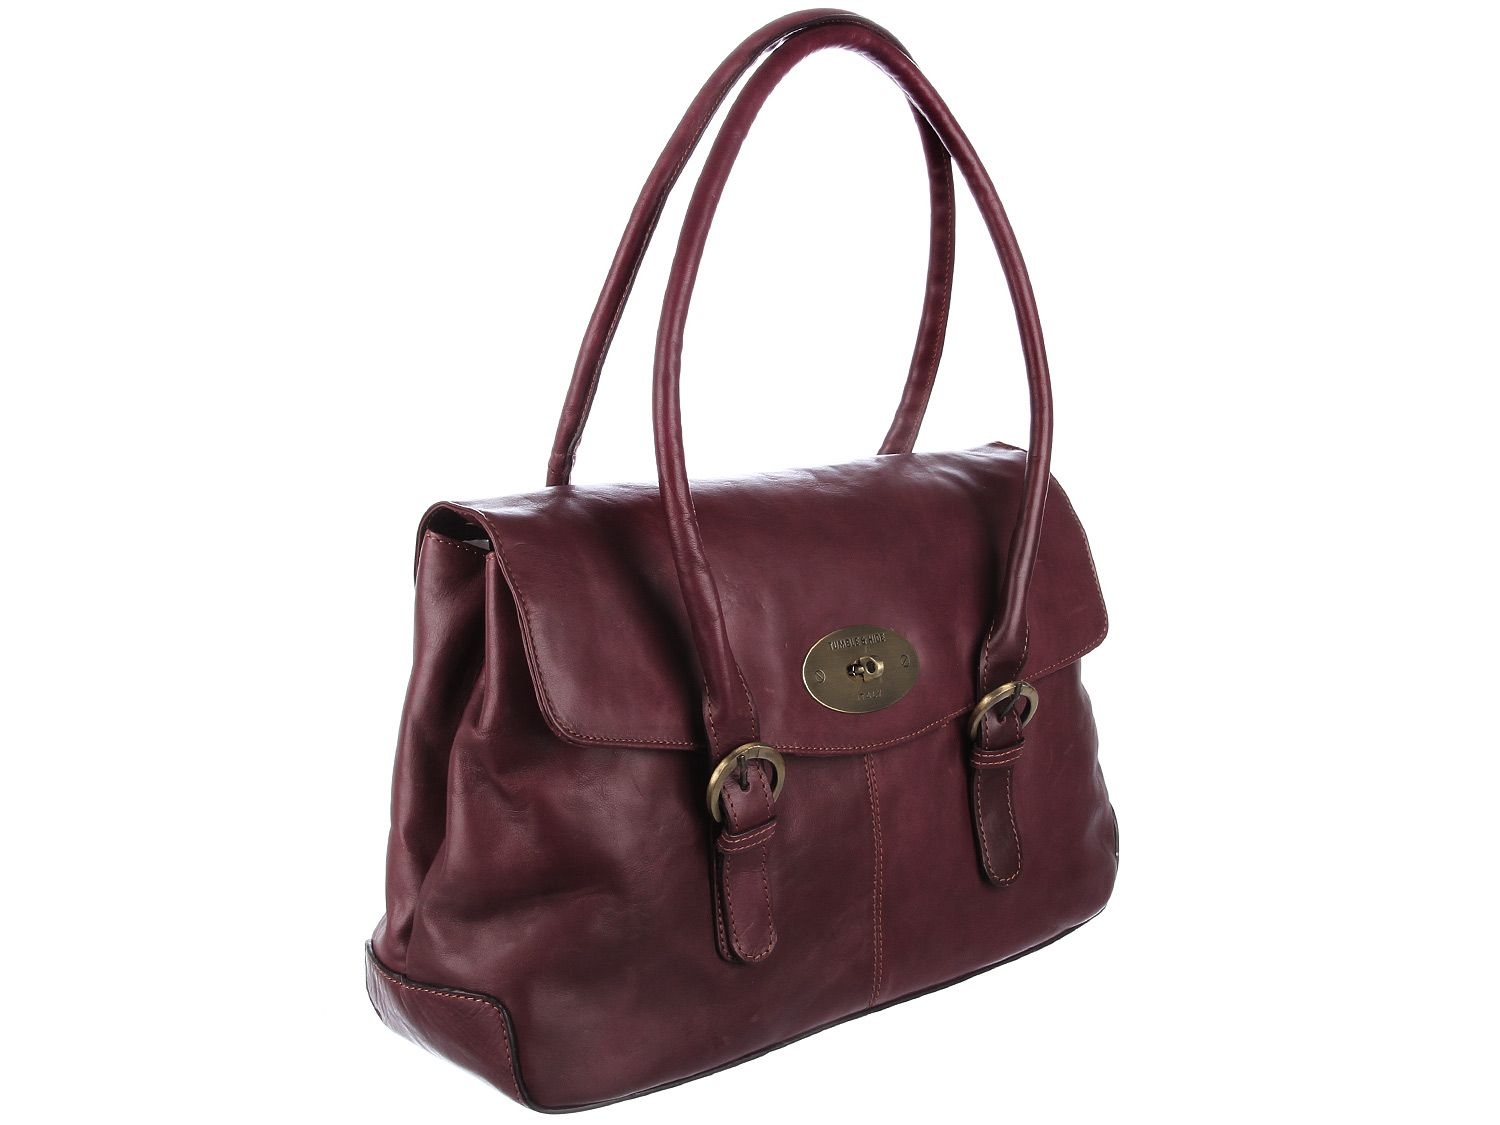 Tumble And Hide 'Verona' Plum Italian Leather Tote,Leather ...